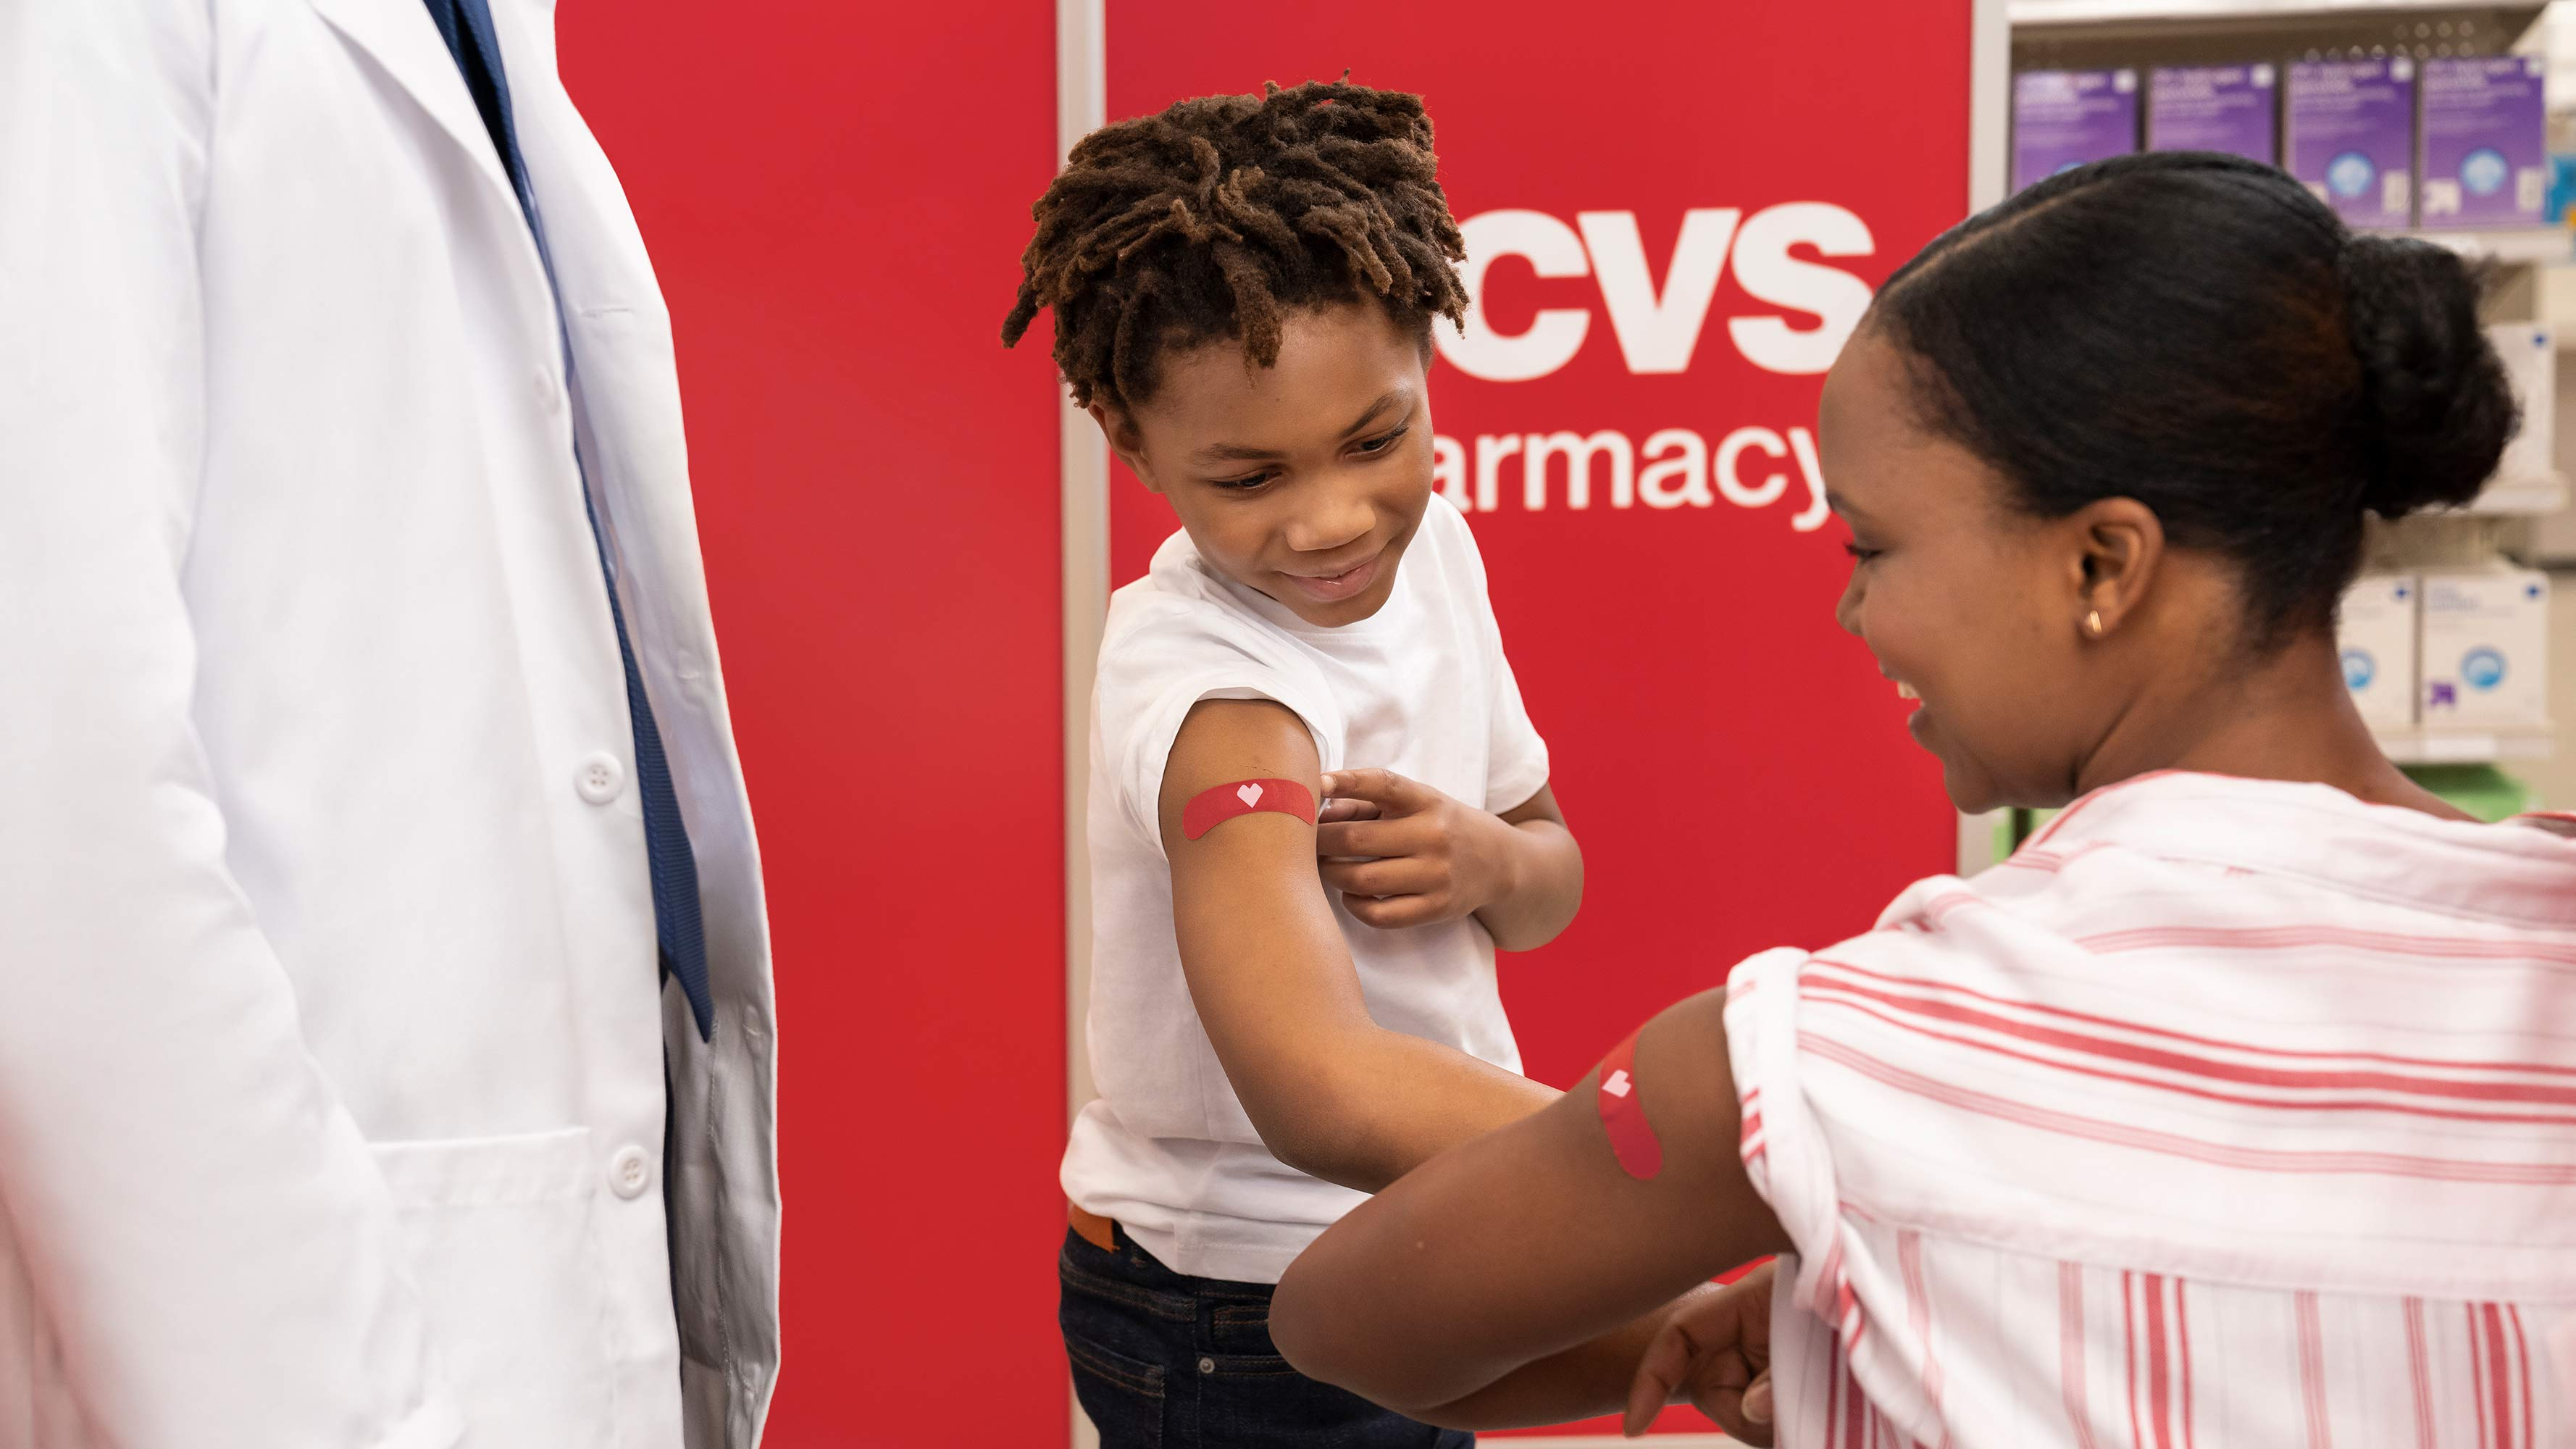 A young boy shows his upper arm bandaid to an adult with a matching bandaid.